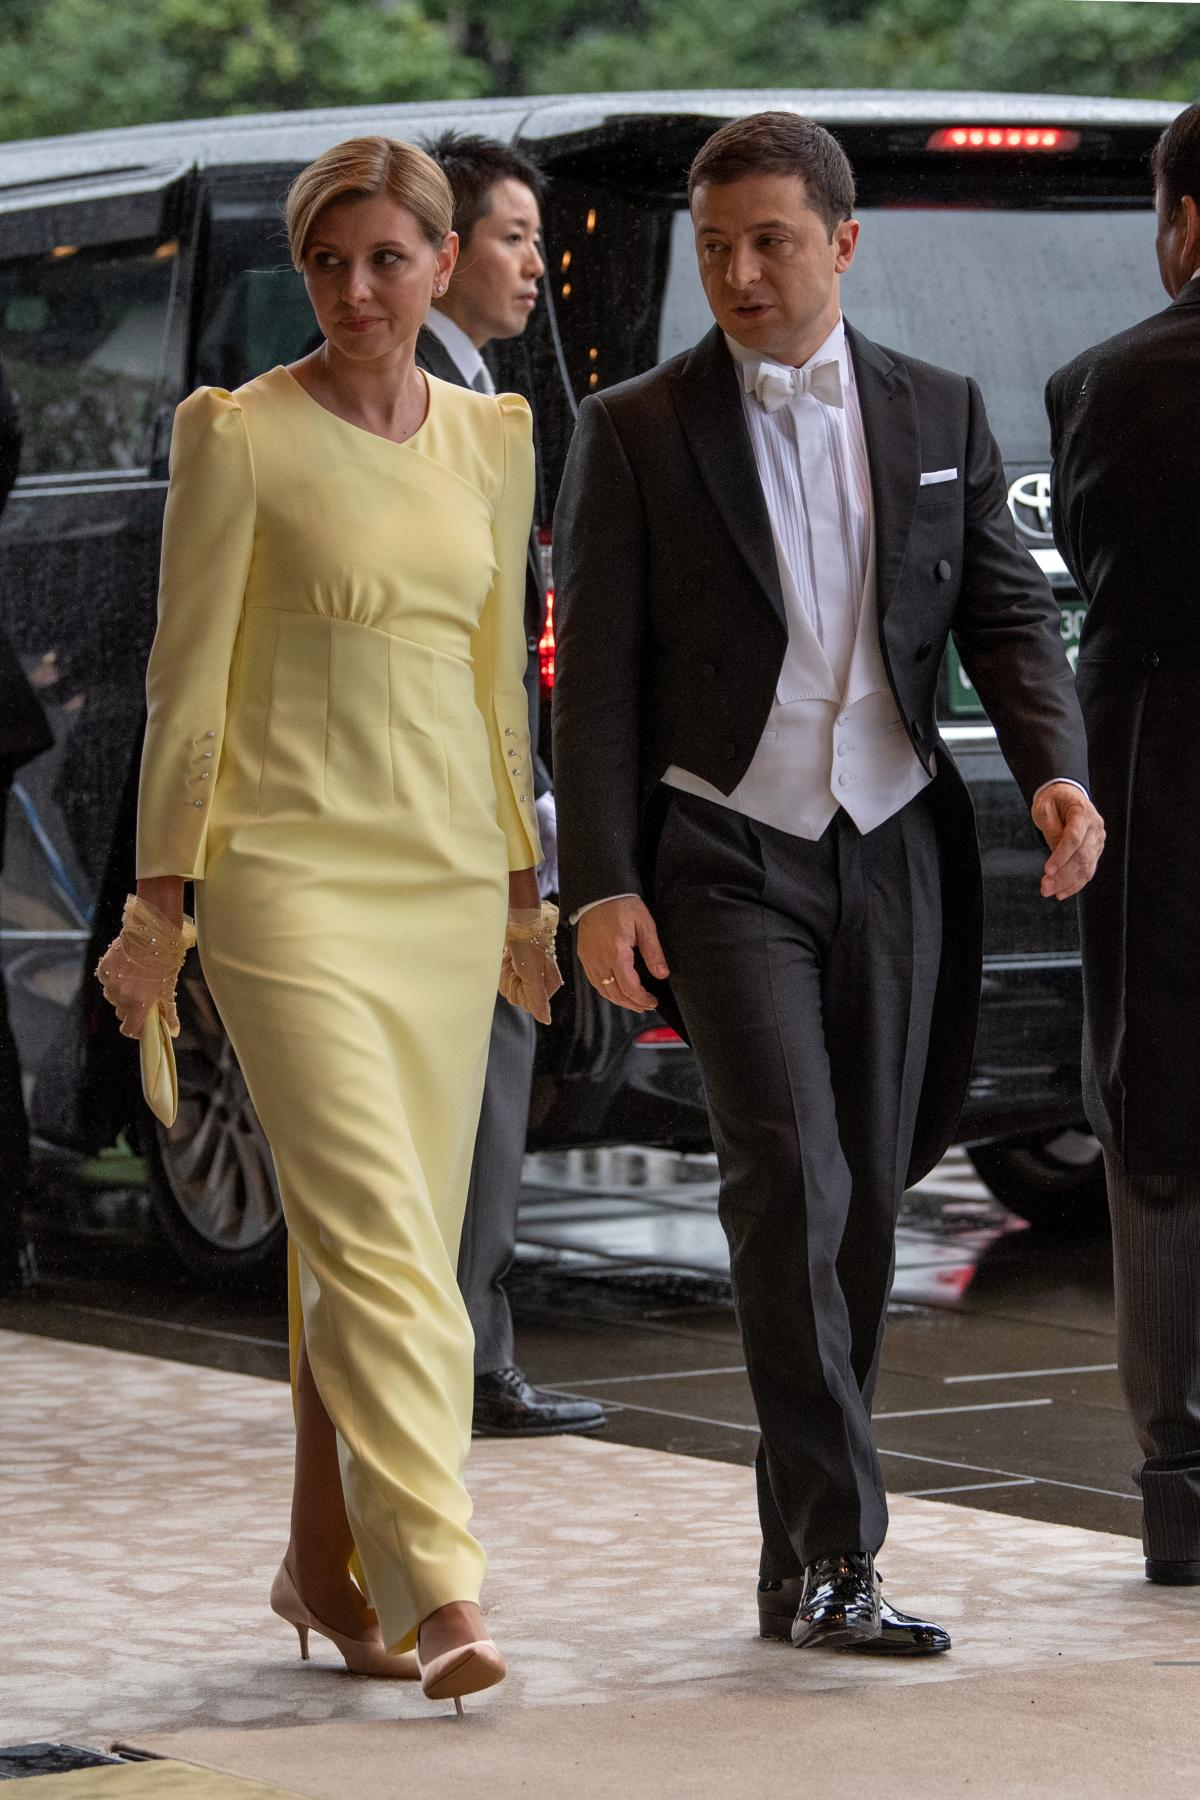 President Zelensky and First Lady Olena Zelenska / REUTERS